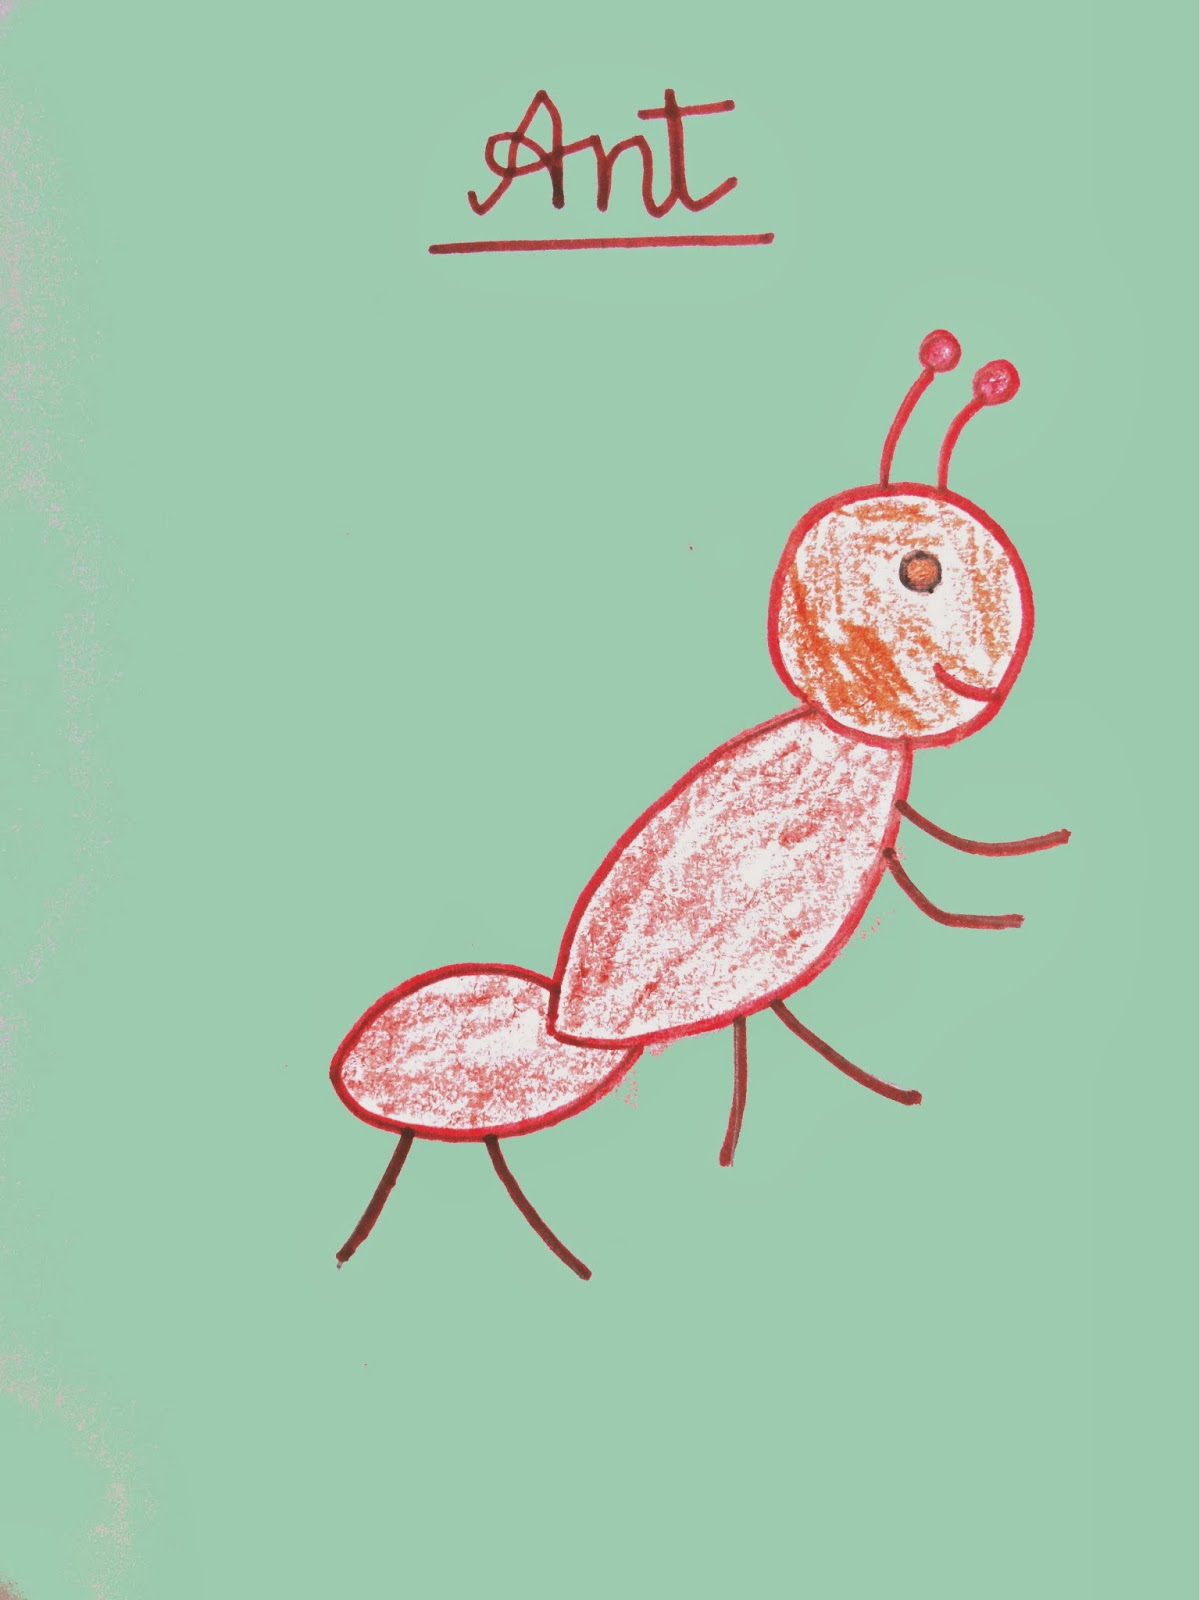 Ant Drawing For Kids at GetDrawings.com | Free for personal use Ant ...